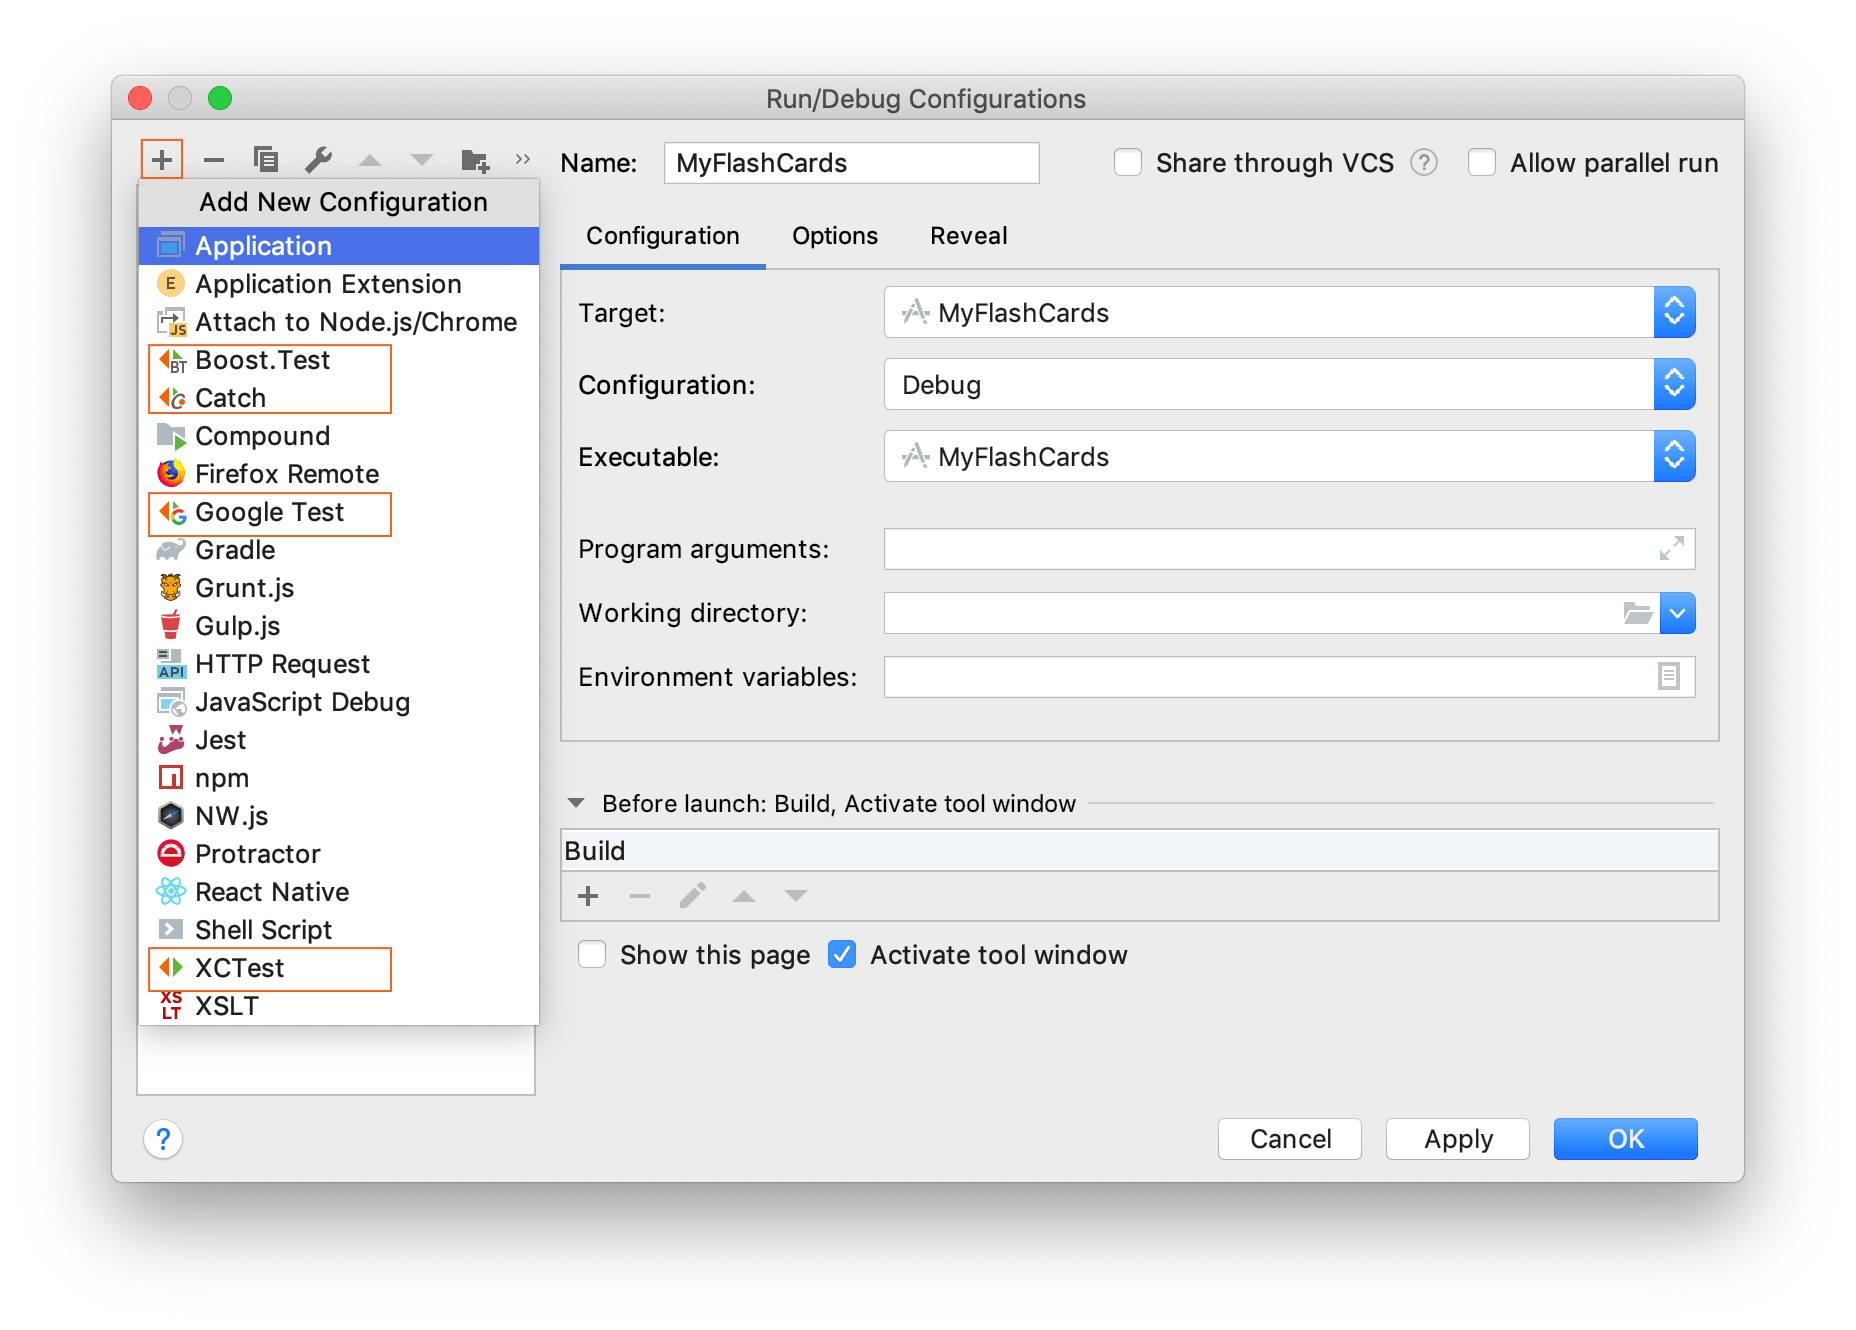 Add a run/debug configuration for tests